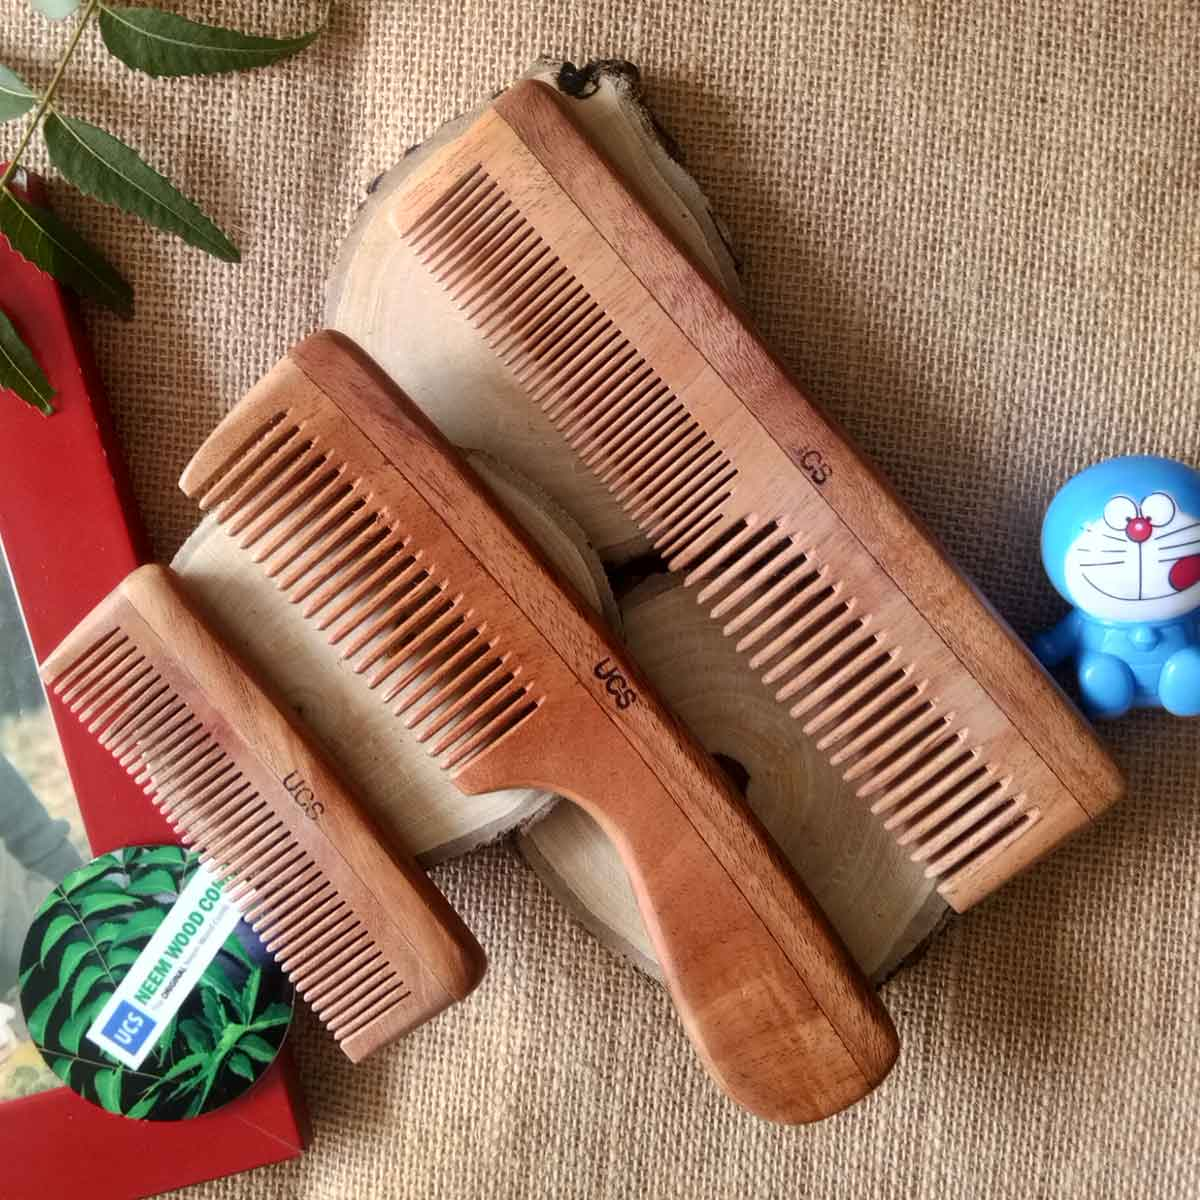 UCS Family Set of Neem Wood Combs Set of 3 Hair Combs (UCS1019)